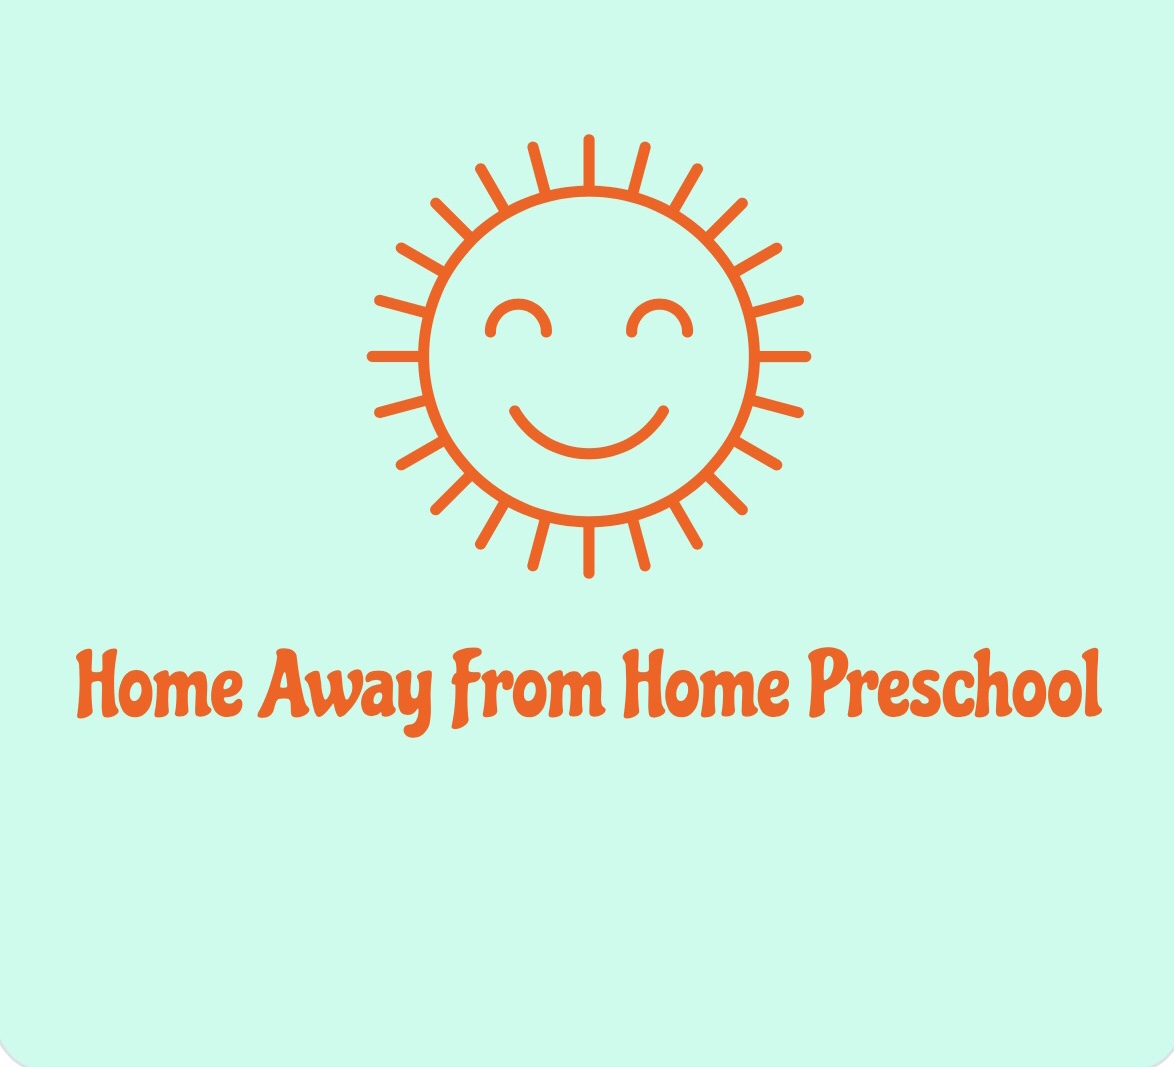 Home Away From Home Preschool